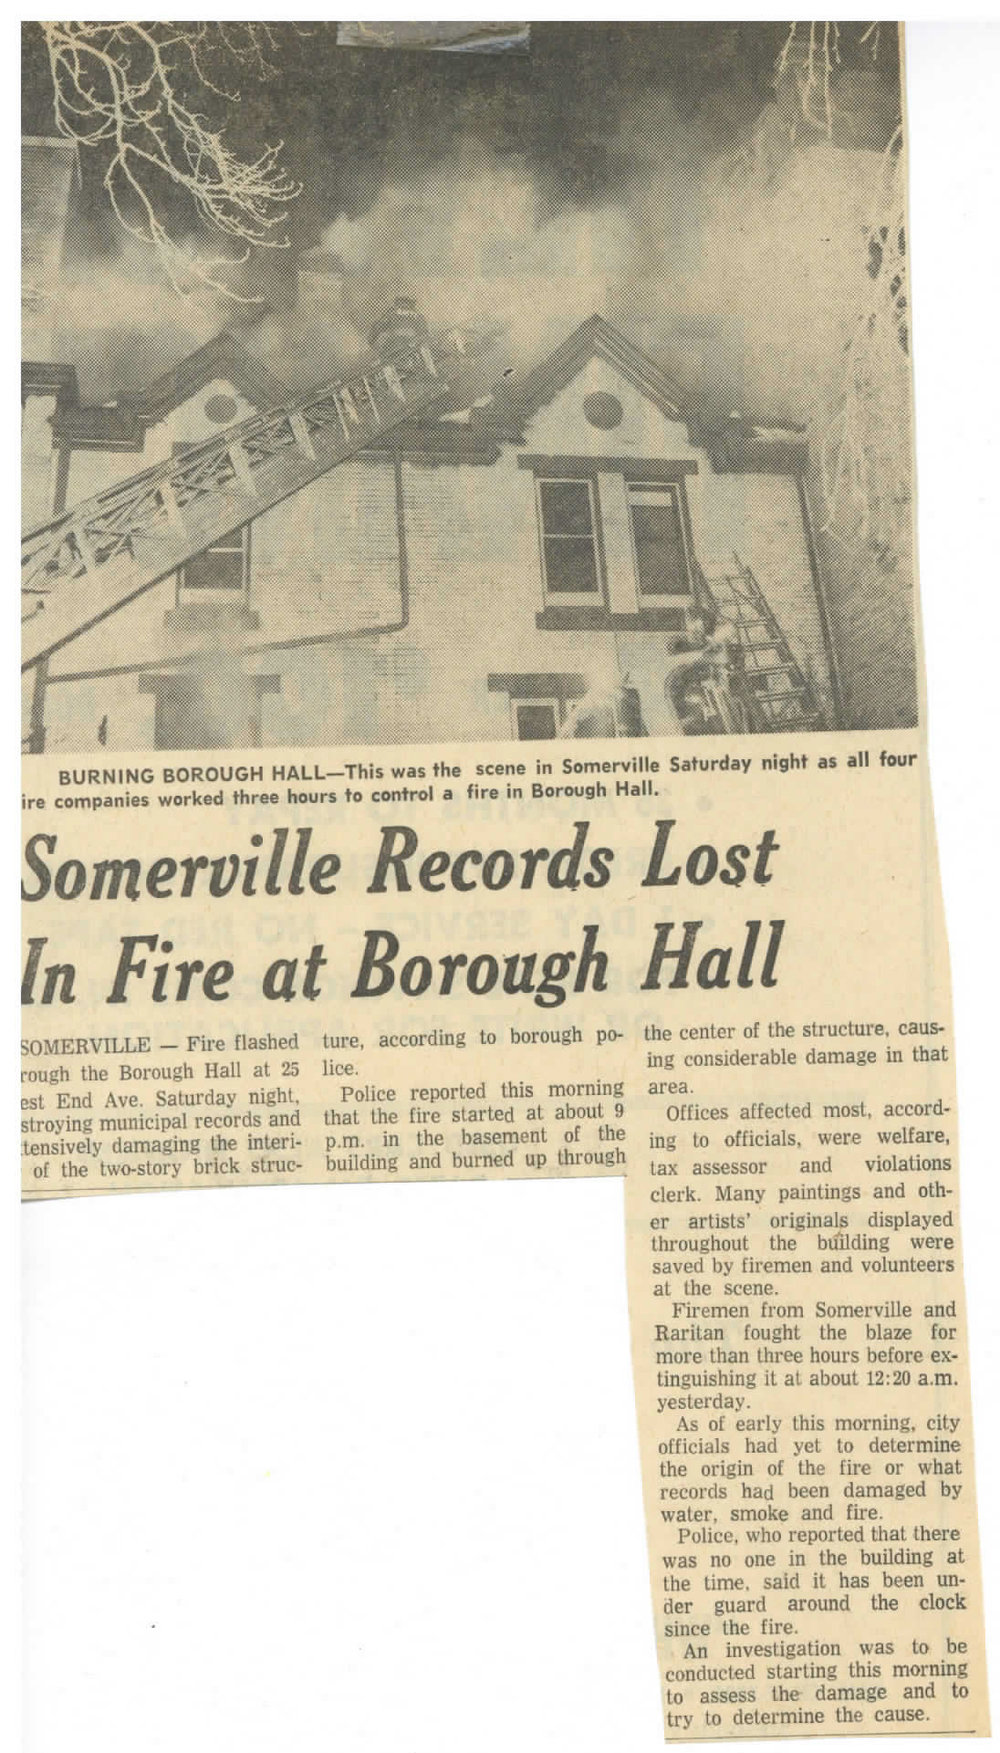 1967 Boro hall fire.article.5_Page_1_Image_0001.jpg